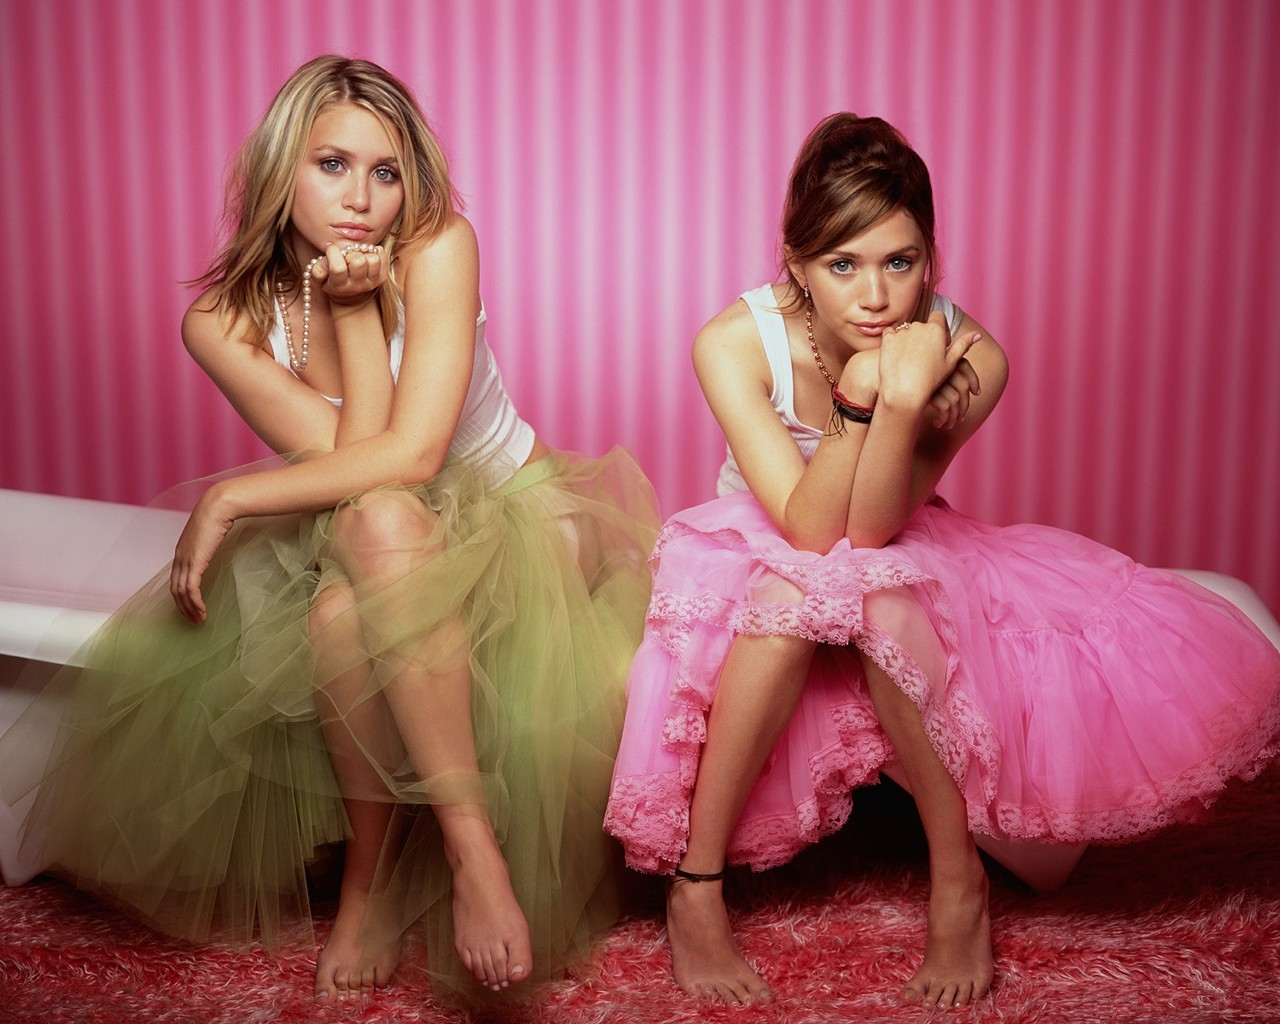 http://4.bp.blogspot.com/_Aq5yS-DqLDo/TLjFJbd248I/AAAAAAAAAA0/vKfuitodd2U/s1600/Mary_-_Kate_and_Ashley_Olsen.jpg